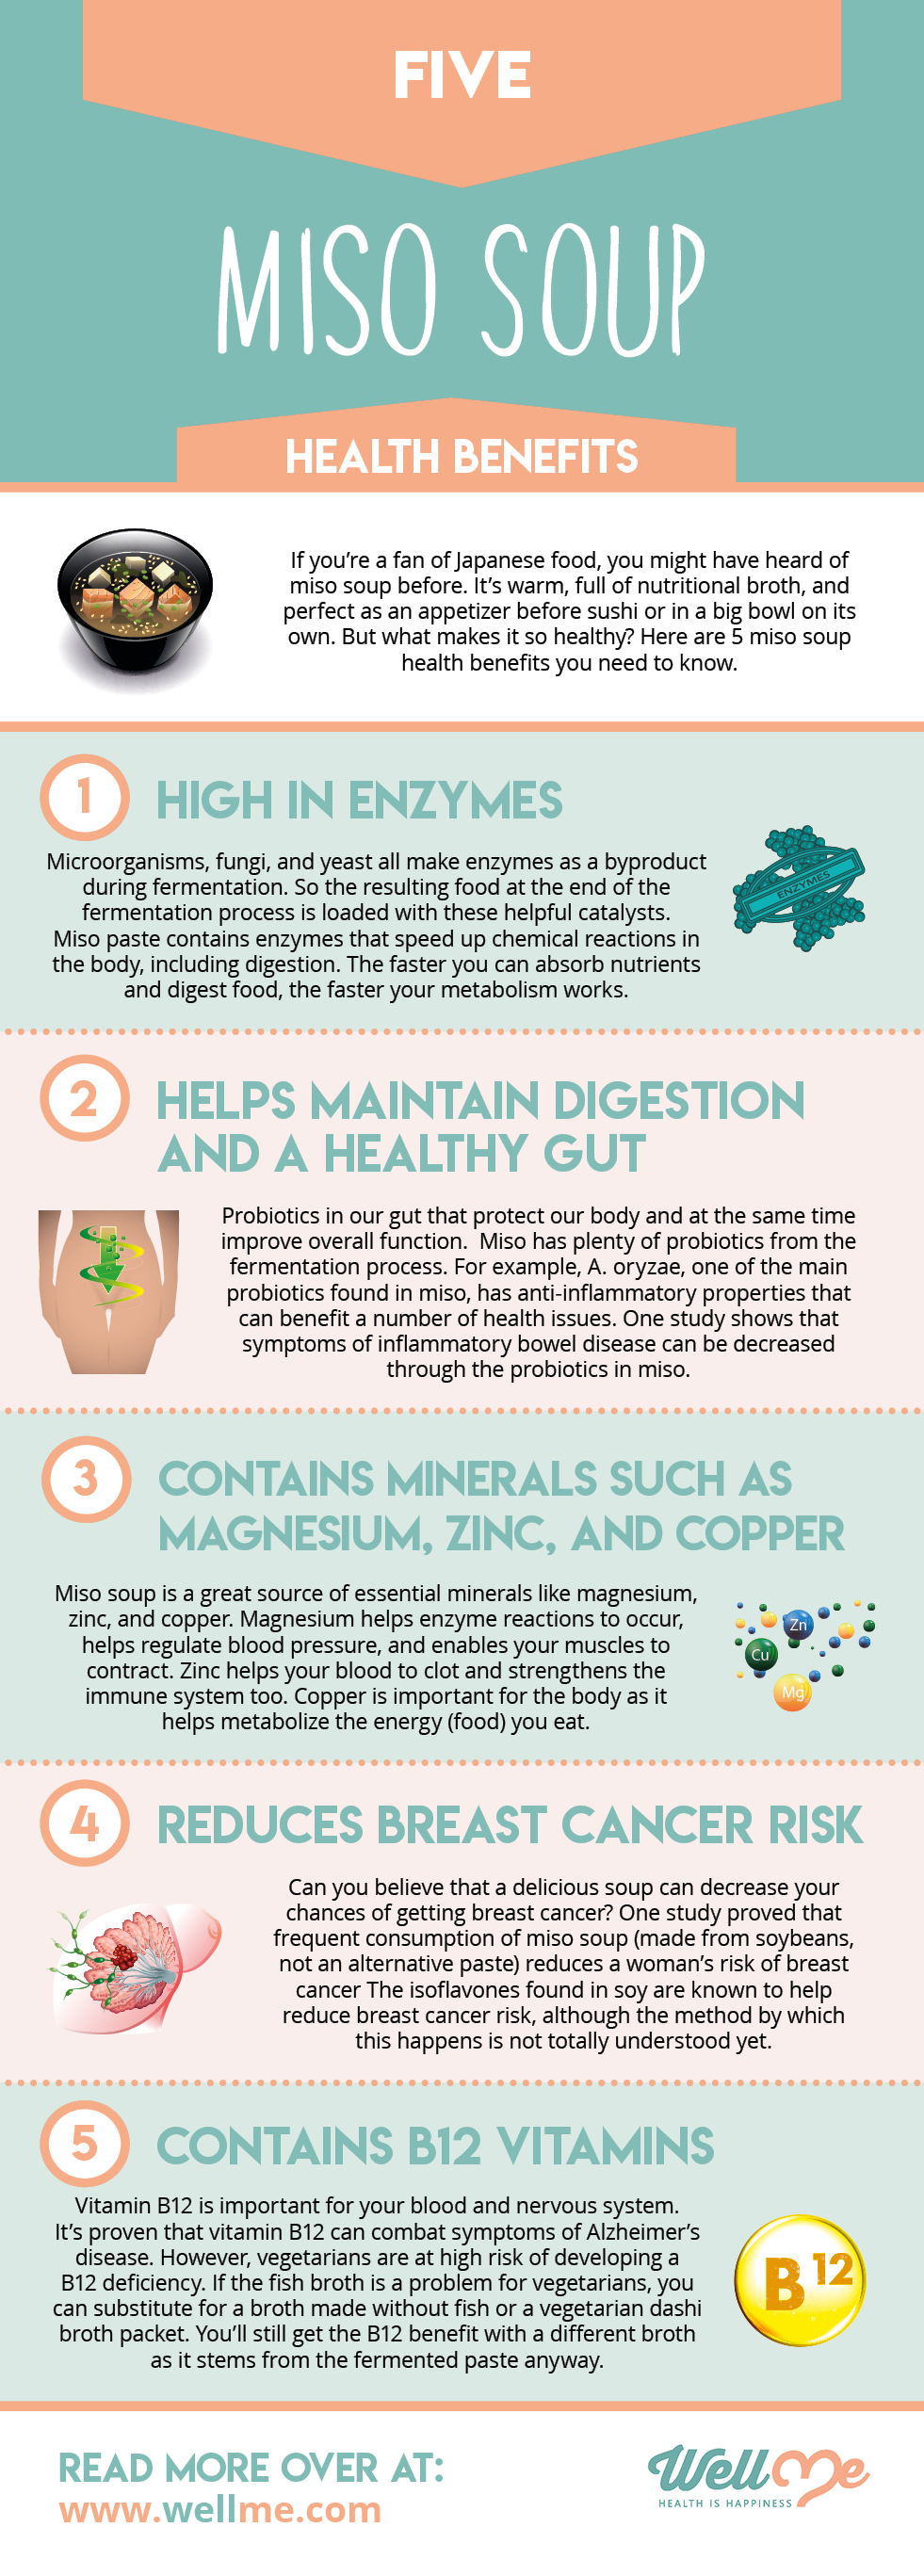 Five Miso Soup Health Benefits infographic